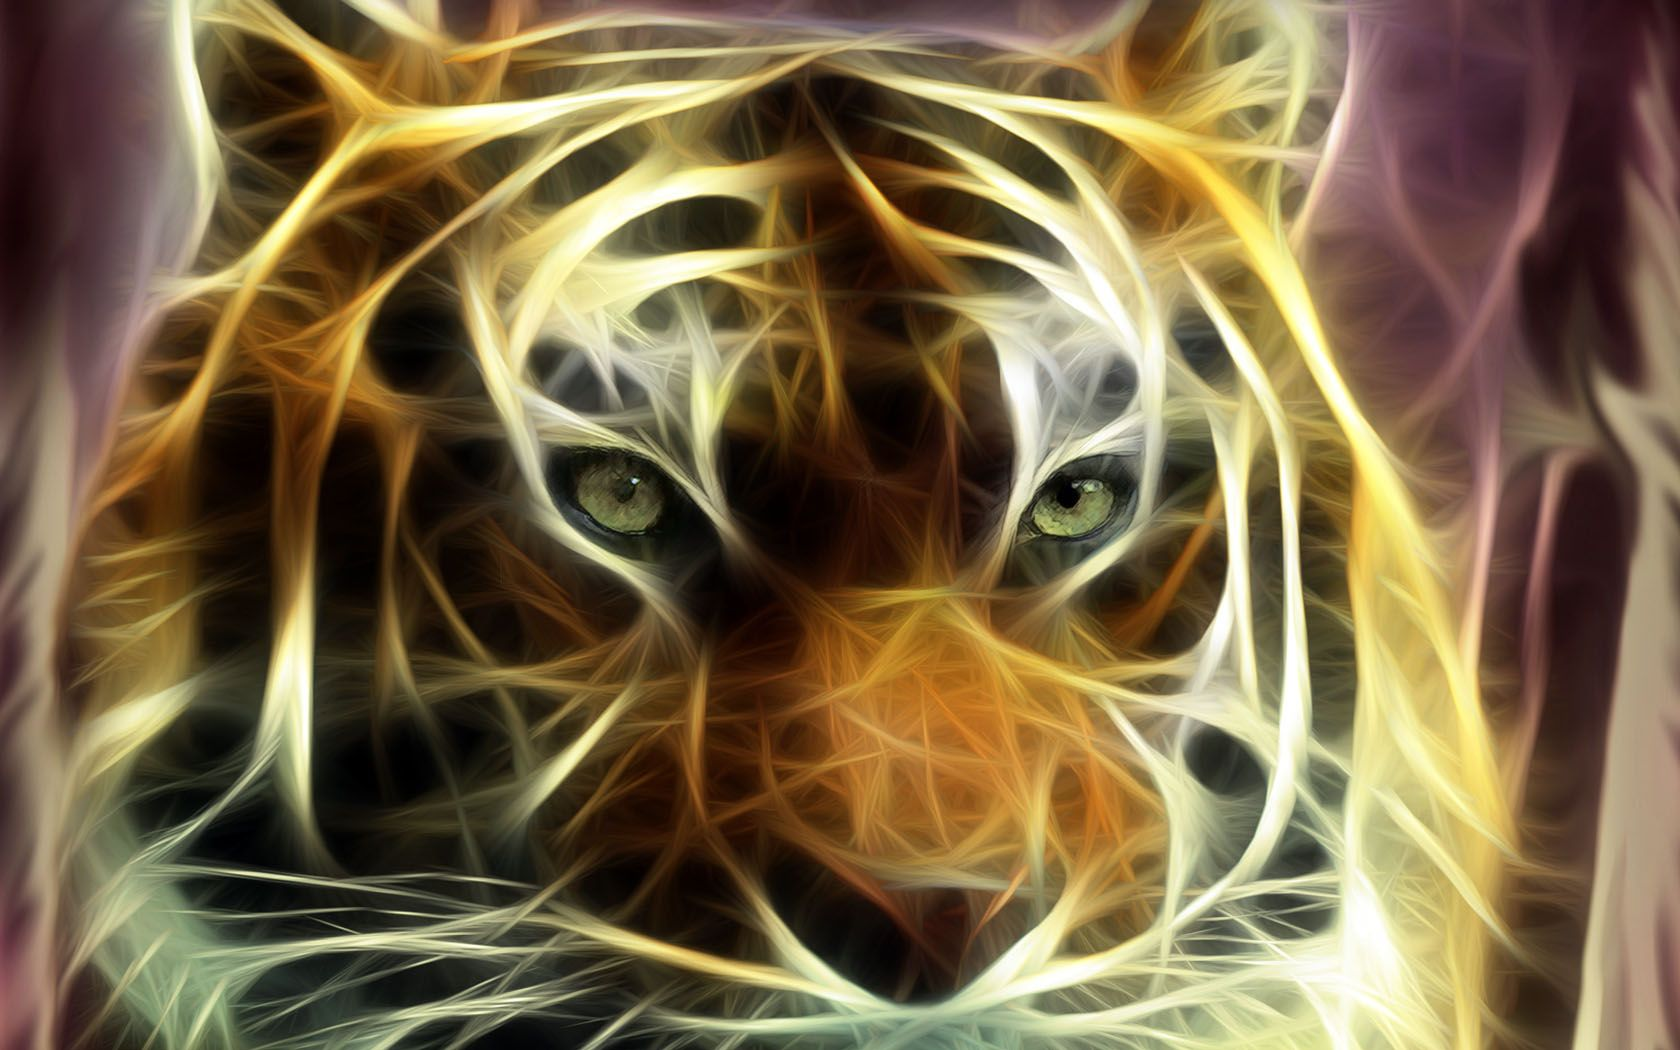 Fractal tiger wallpaper tigers fractalius fresh new hd wallpaper fractal tiger wallpaper tigers fractalius fresh new hd wallpaper best quality hd wallpaper thecheapjerseys Image collections